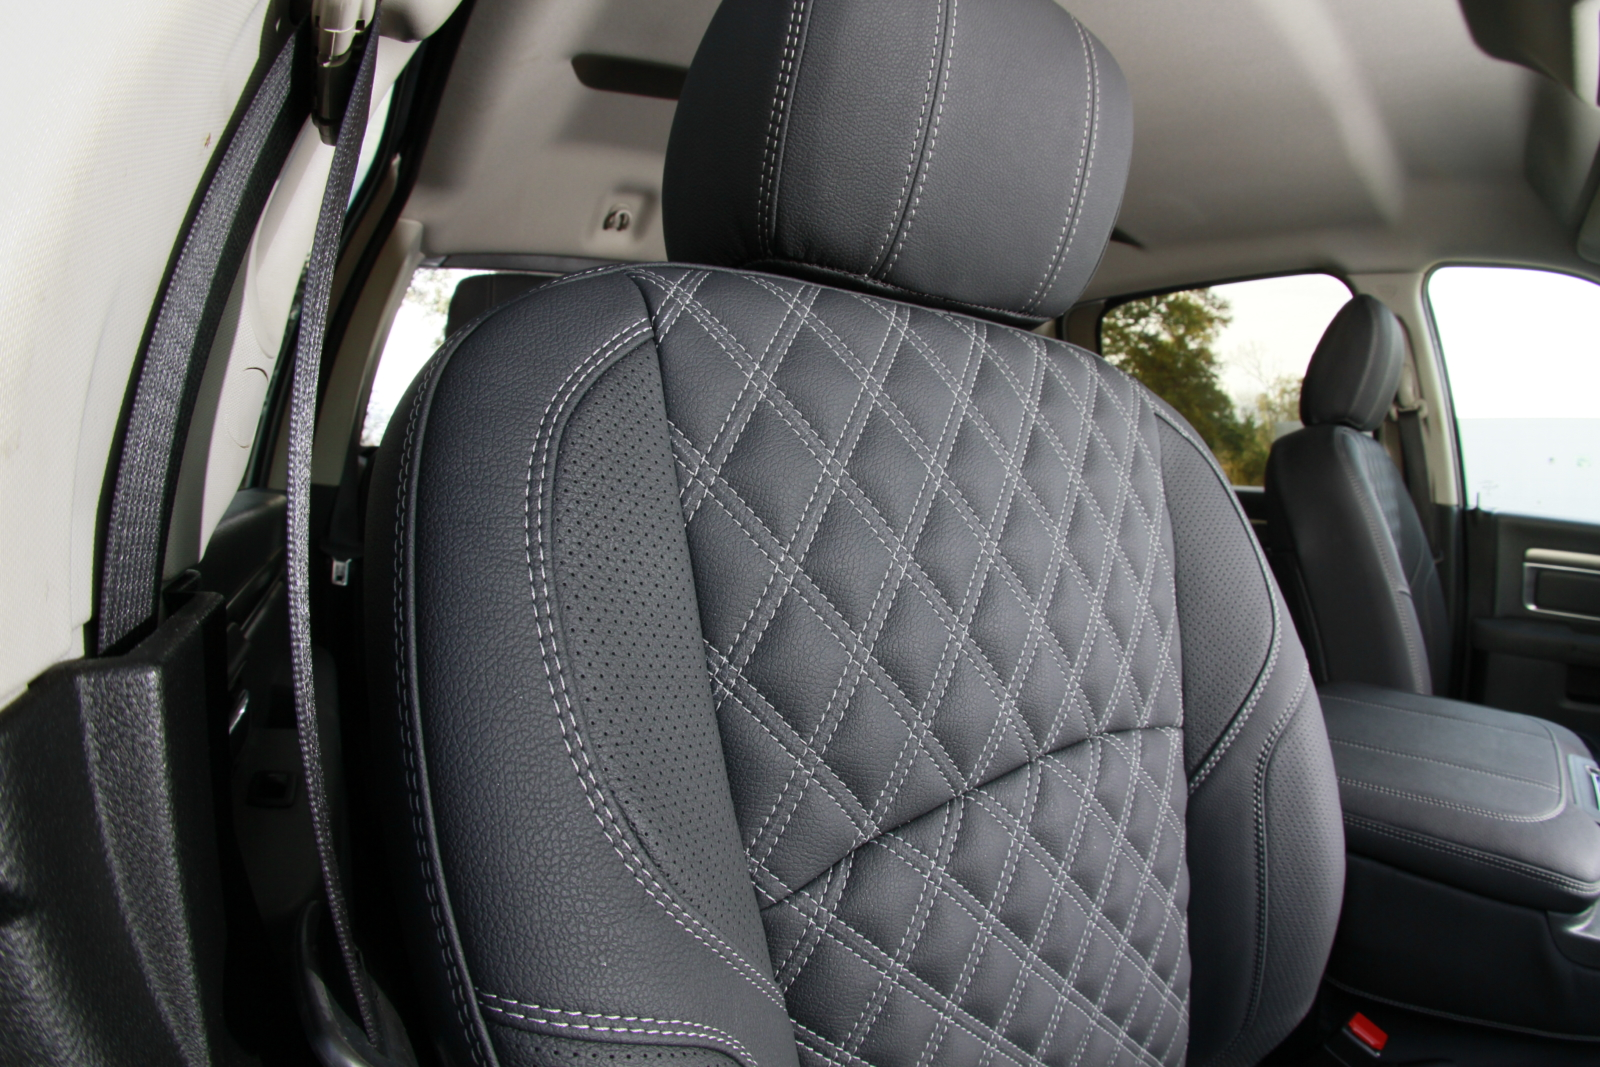 Marvelous Dodge Ram 2500 Leather Interior Seat Upholstery Ocoug Best Dining Table And Chair Ideas Images Ocougorg